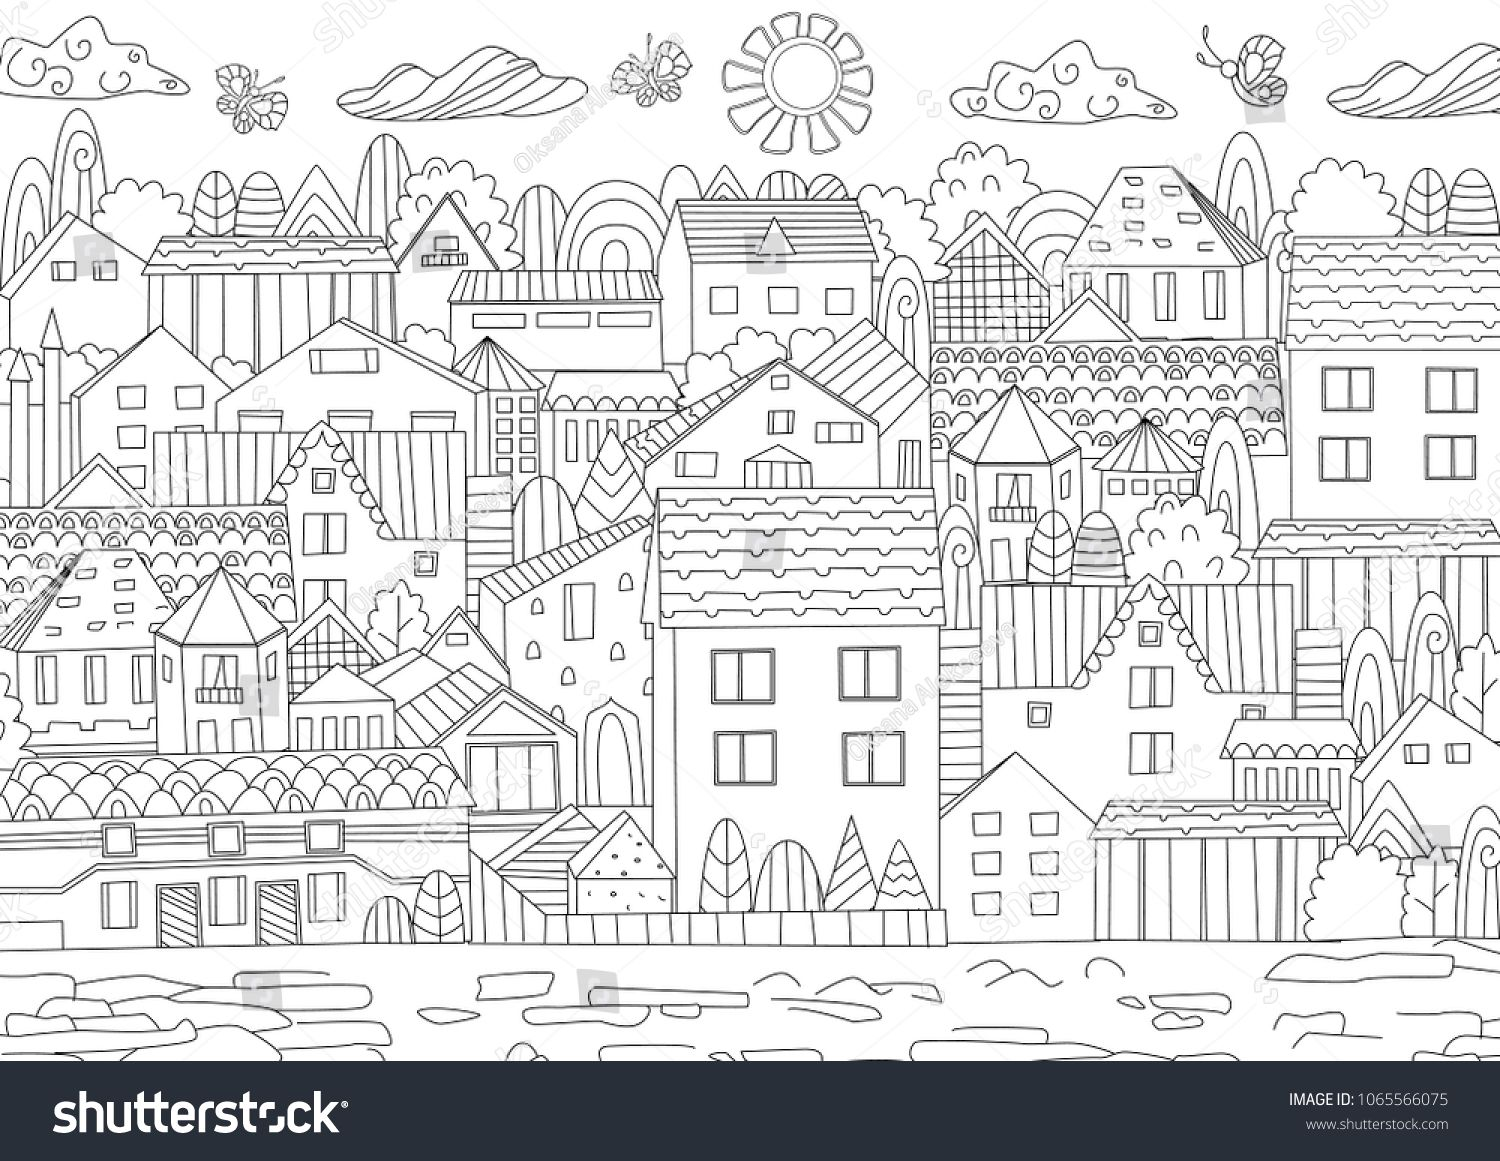 Cozy Cityscape For Your Coloring Bookcityscape Cozy Book Coloring Coloring Books Cityscape Print Designs Inspiration